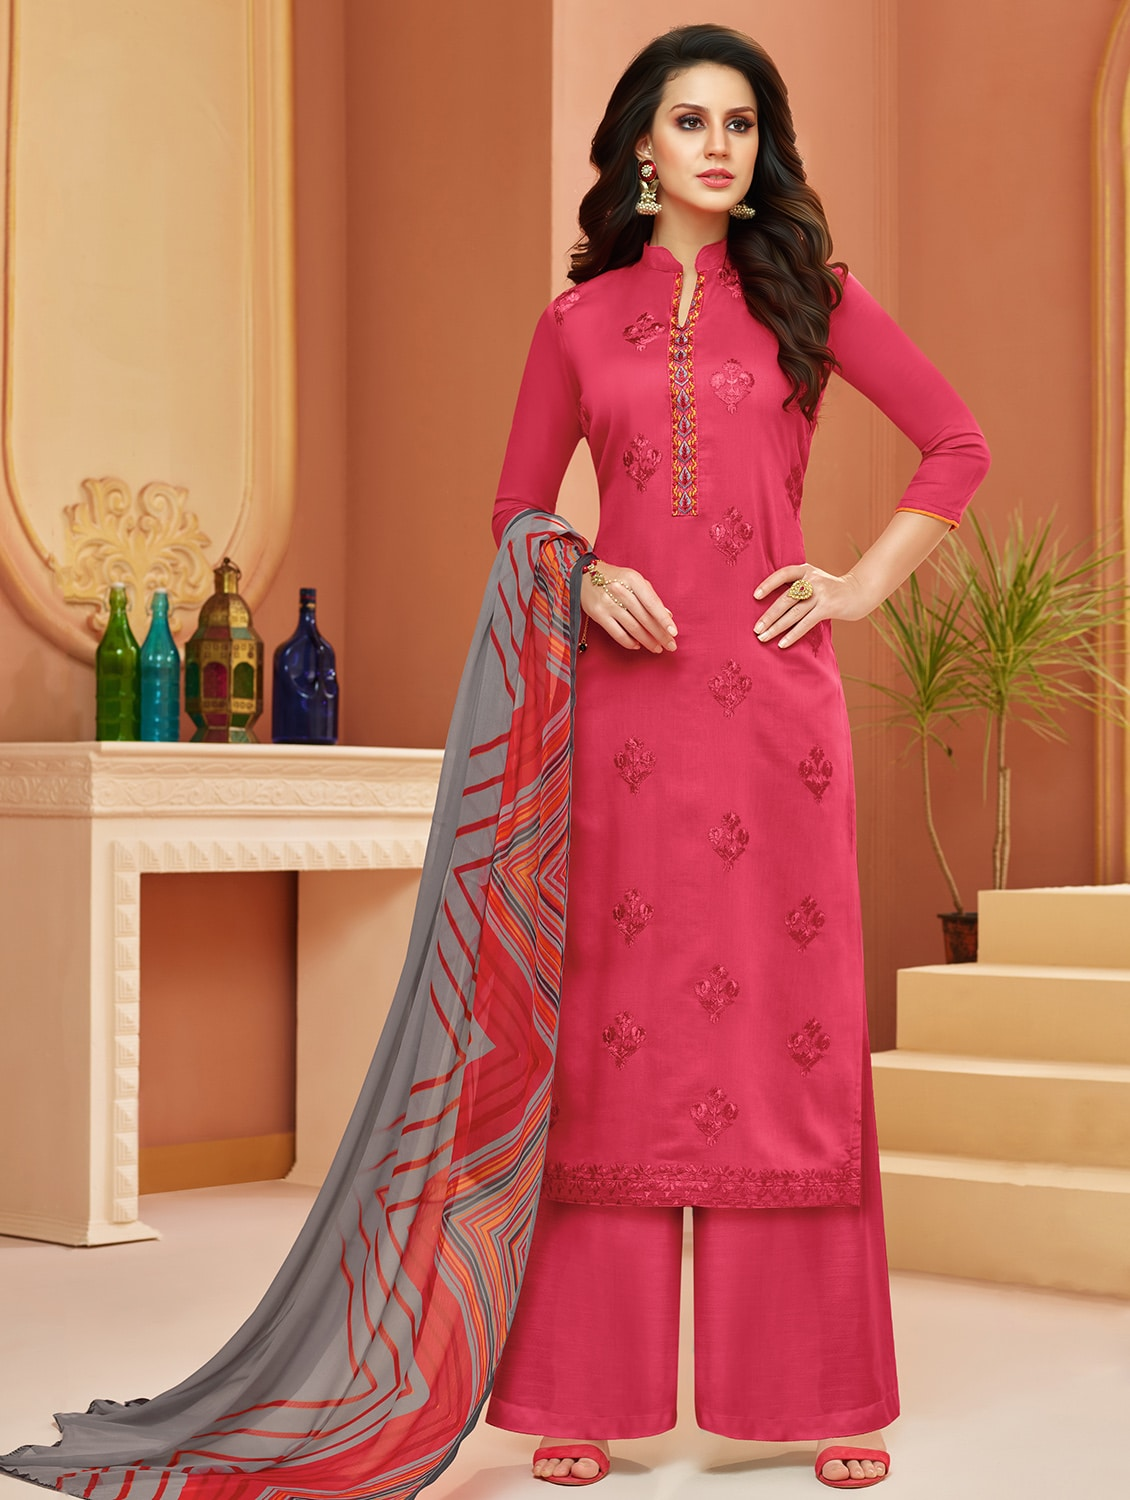 193115a2cb0 Buy Embroidered Unstitched Palazzo Suit for Women from Mf Next for ₹1249 at  75% off